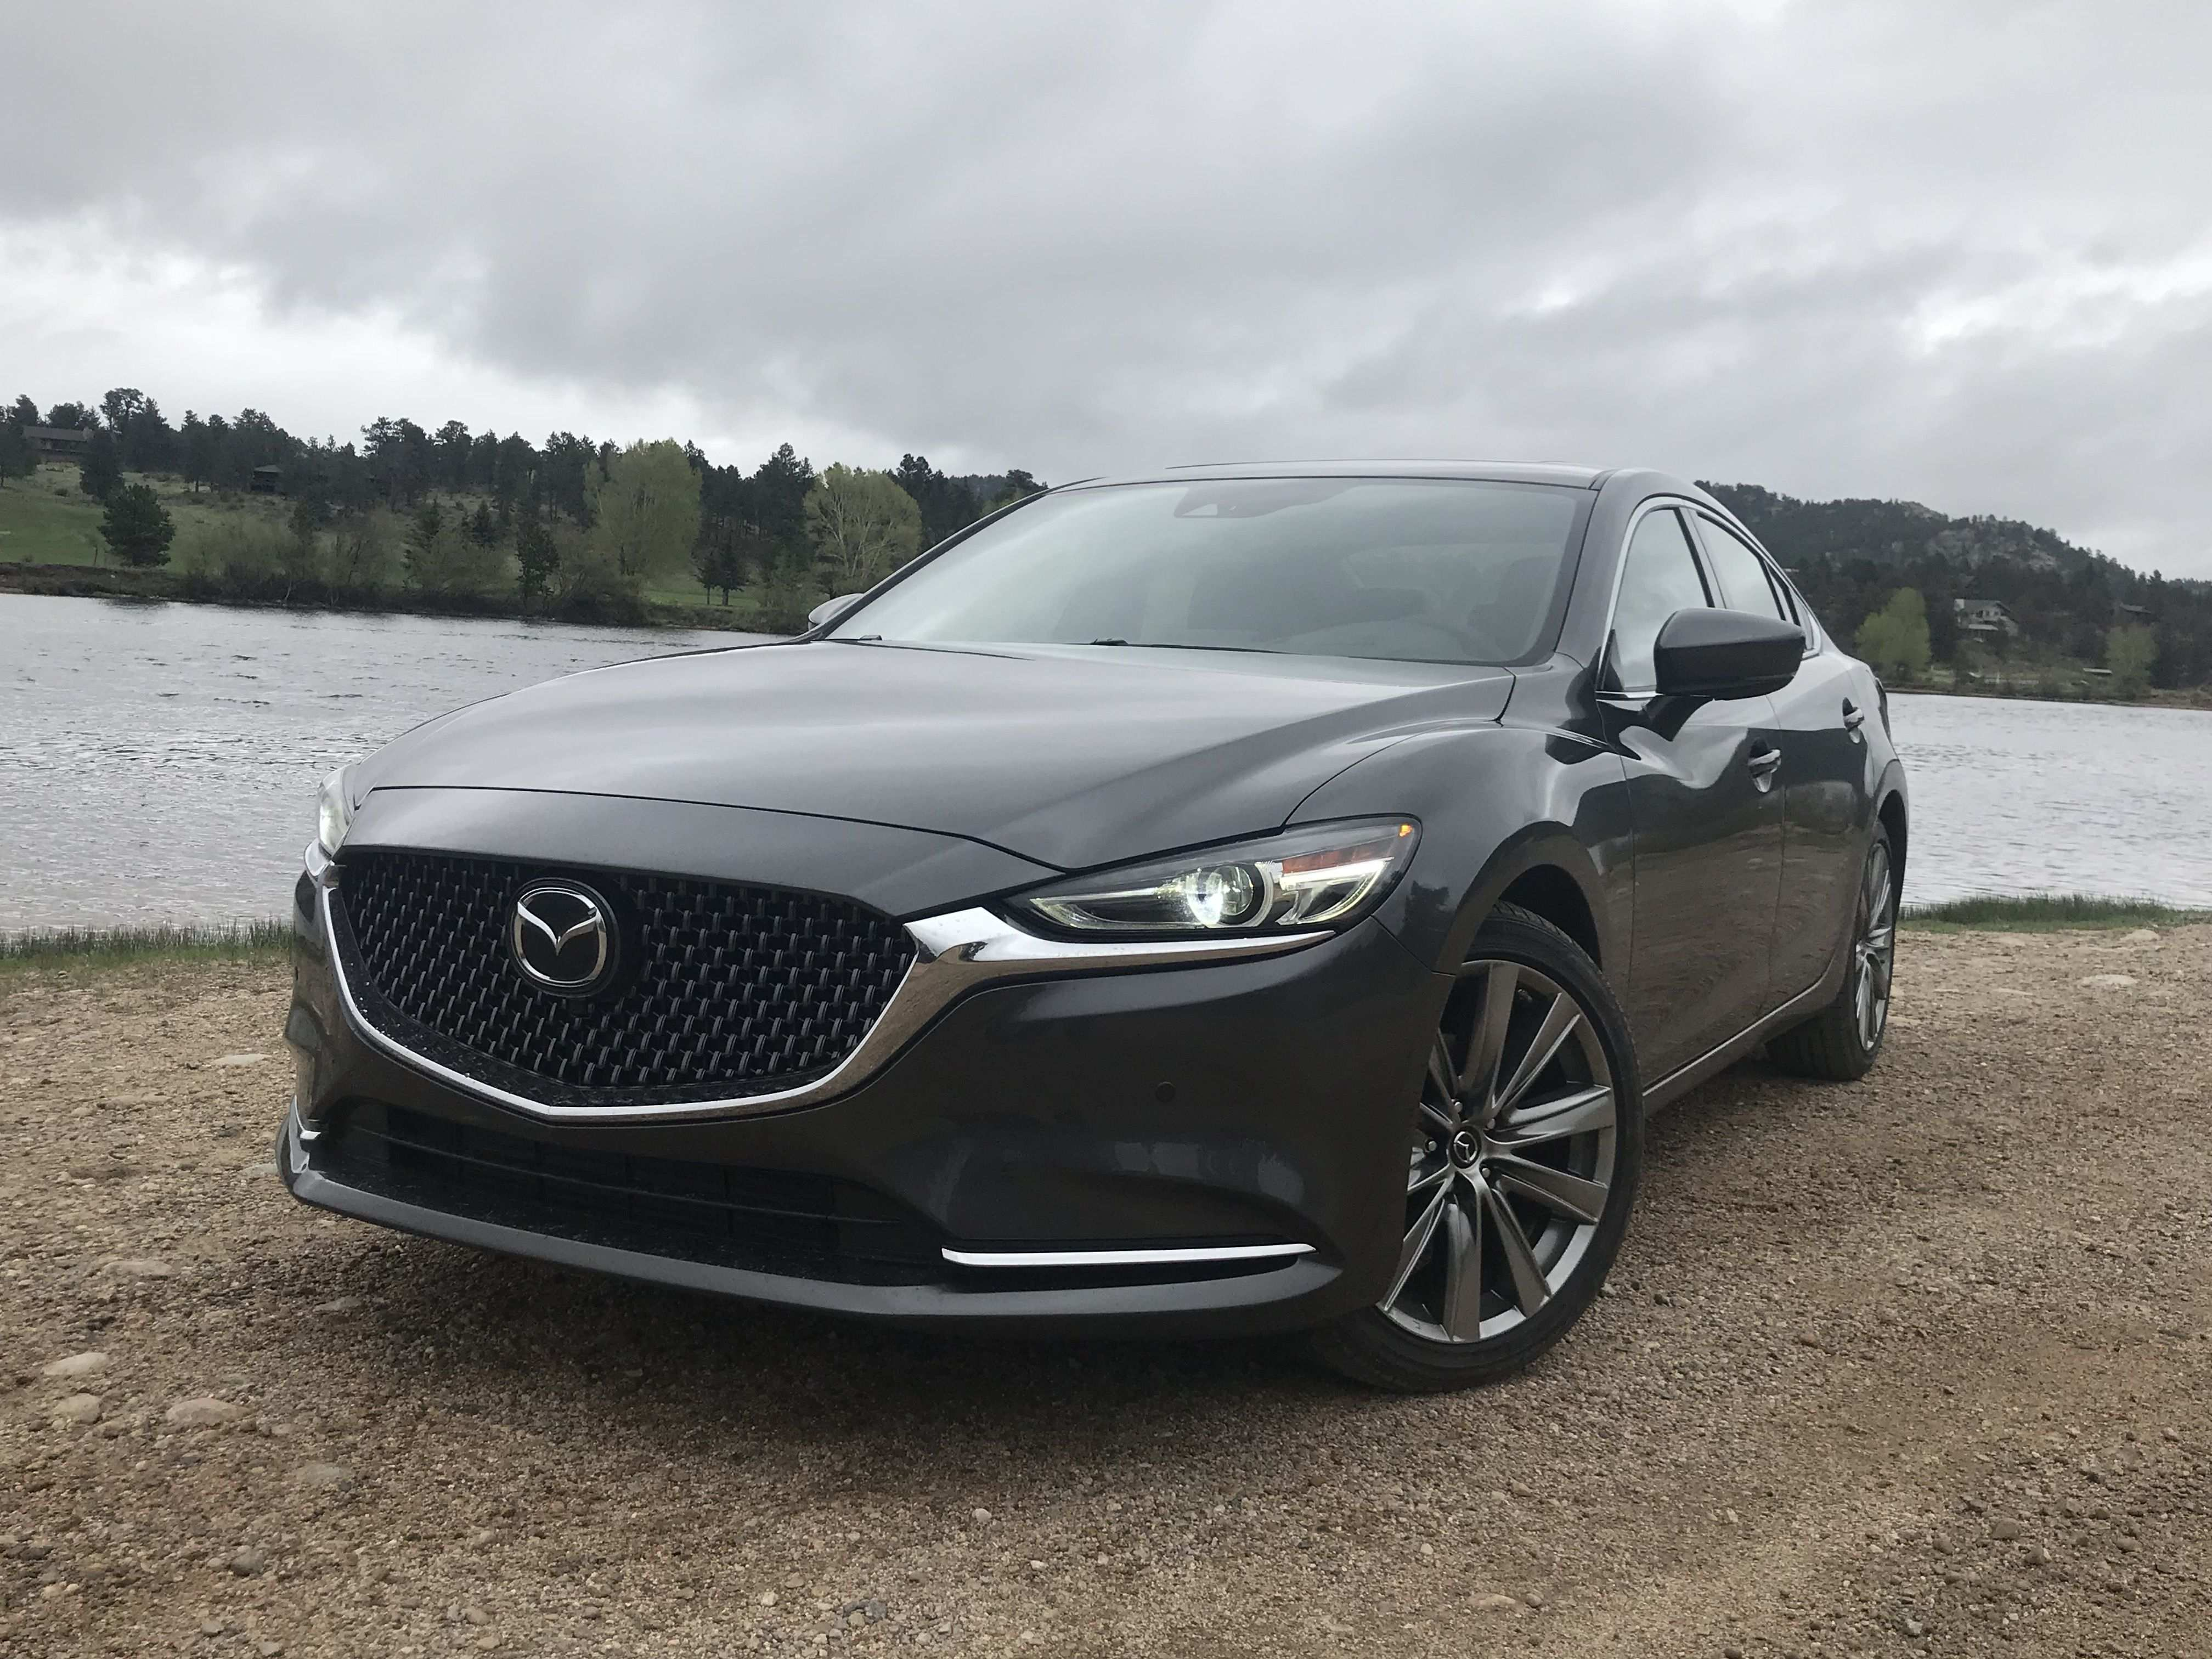 35 A 2019 Mazda 6 Turbo 0 60 Redesign